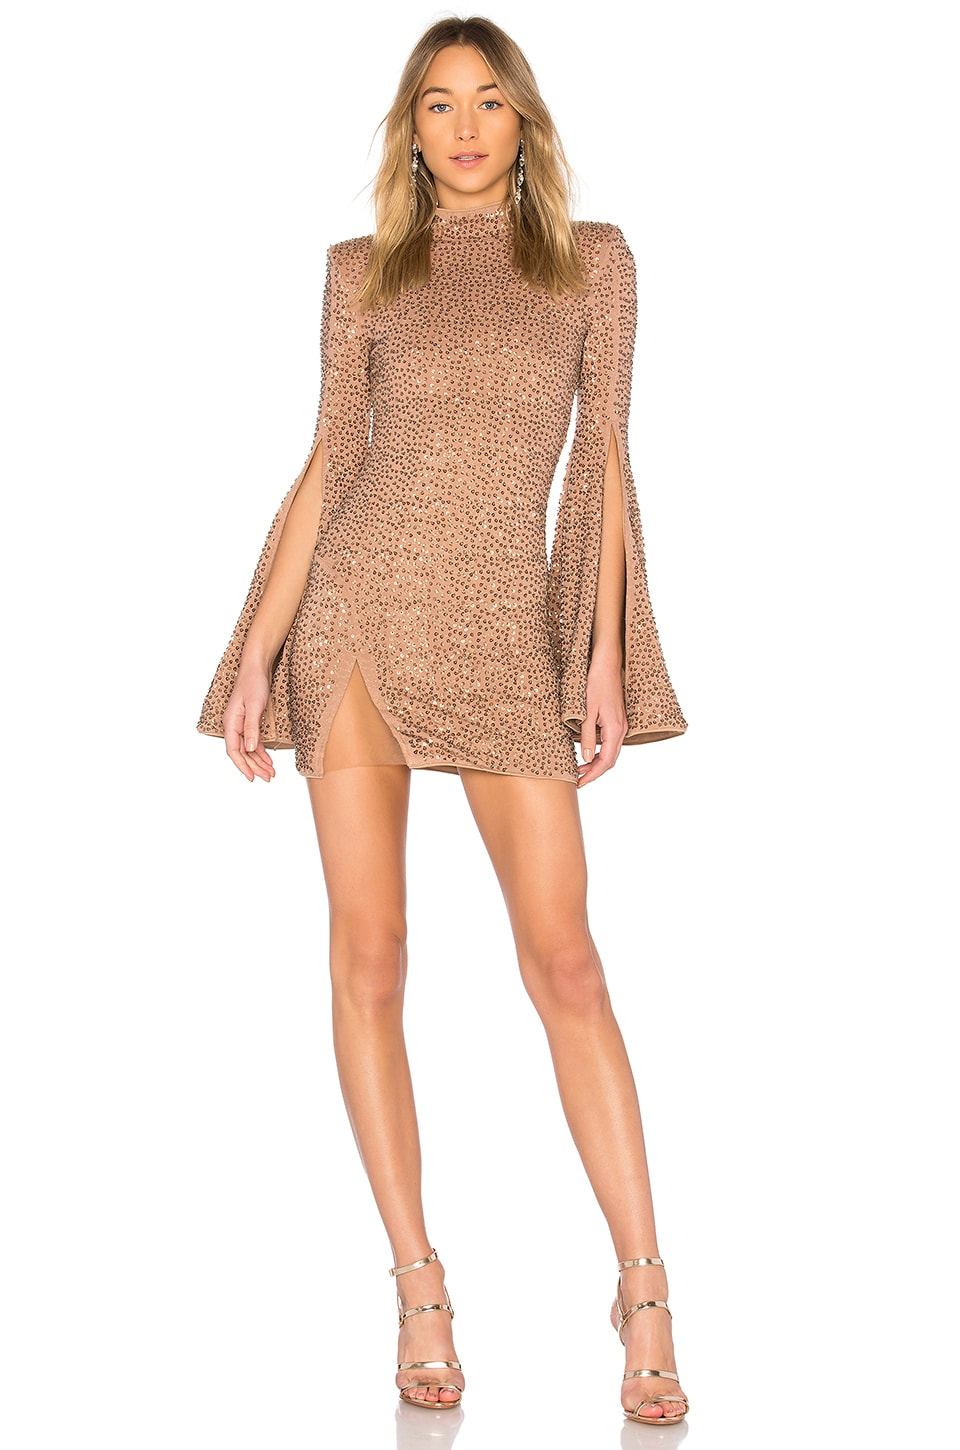 x REVOLVE Mr. Gibson Mini Dress, view 1, click to view large image.